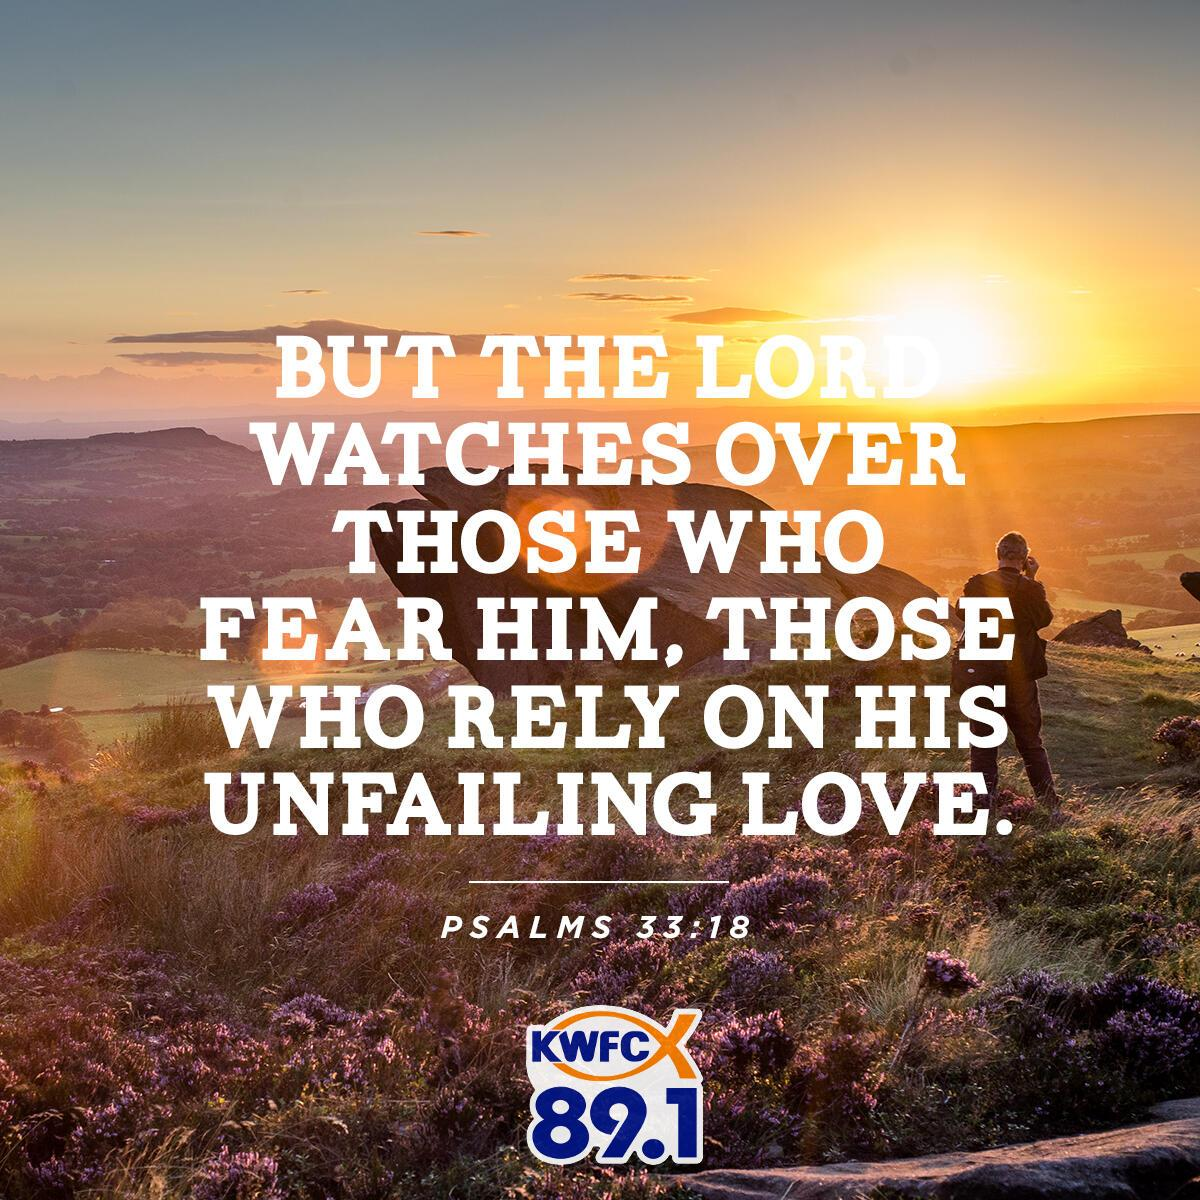 Psalms 33:18 - Verse of the Day